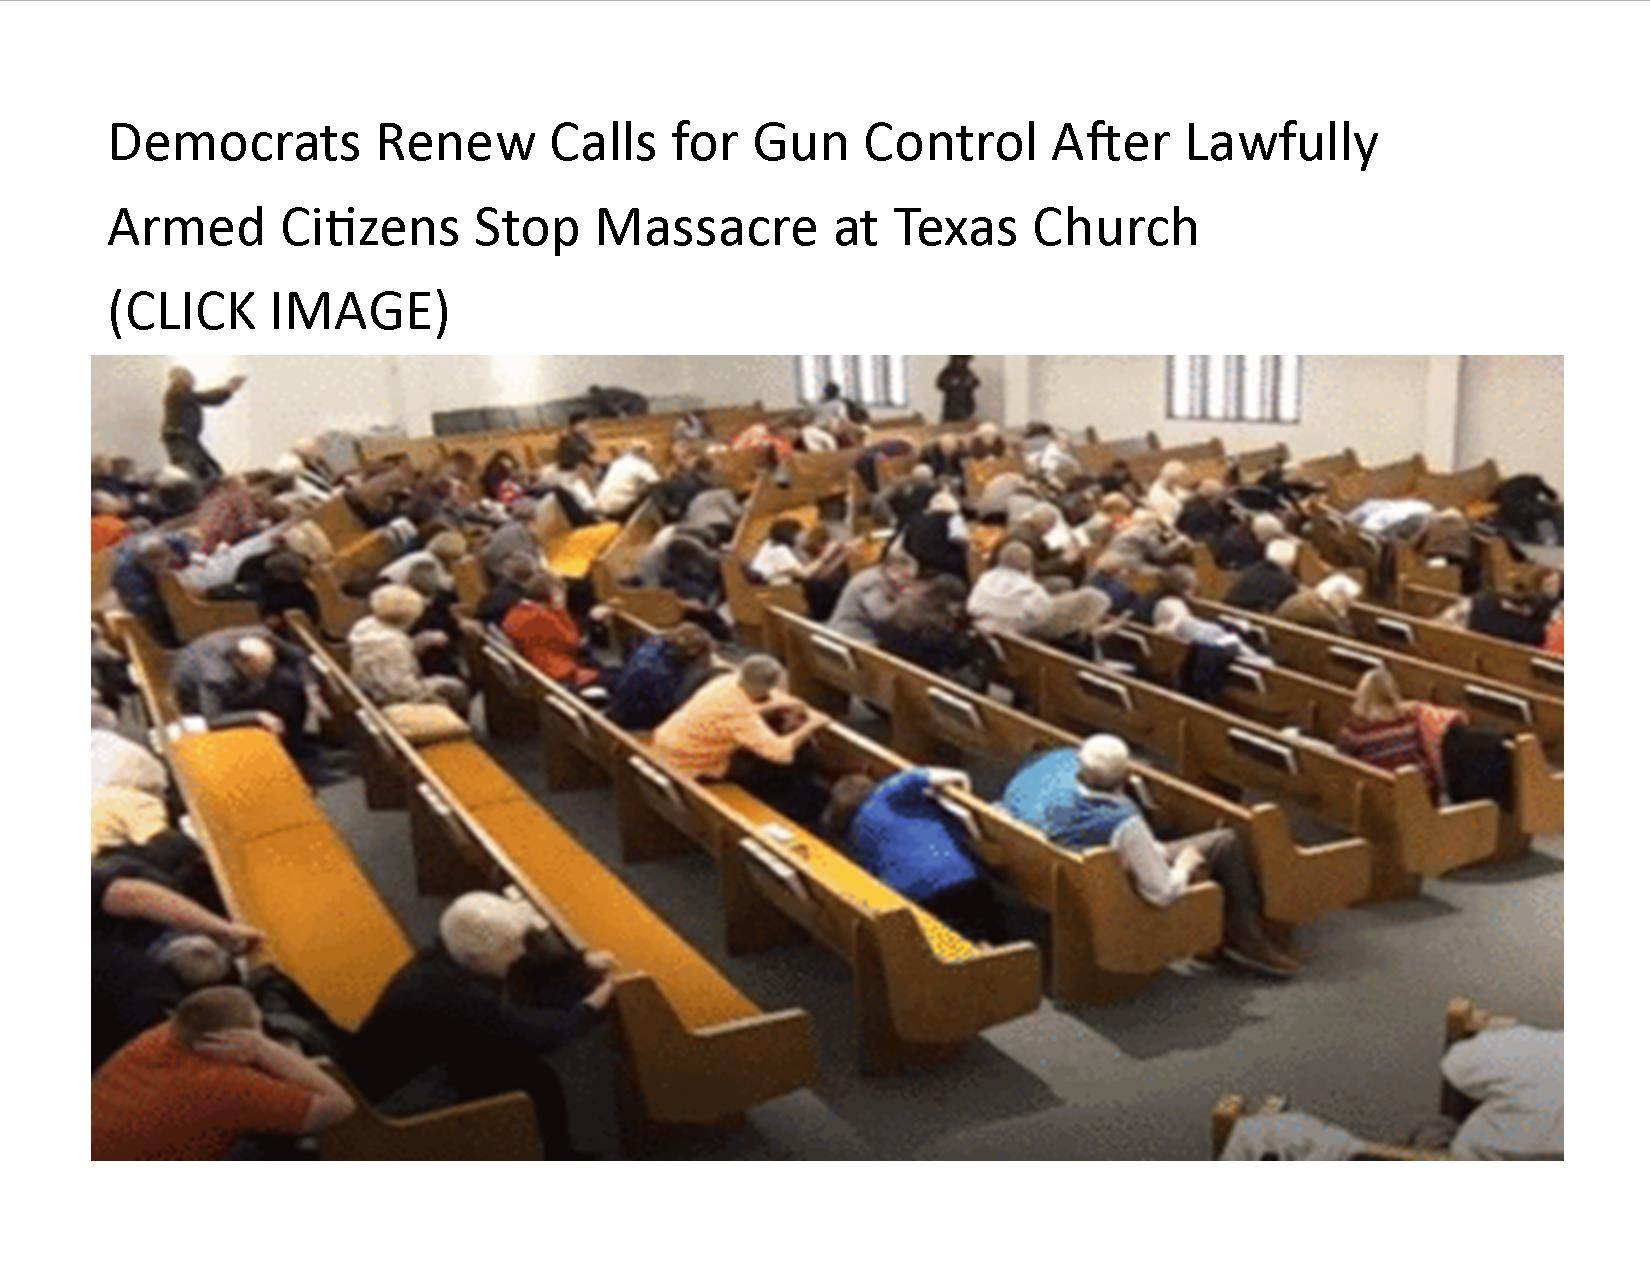 https://www.gunsamerica.com/digest/democrats-renew-gun-control-lawfully-armed-citizens-stop-texas-church/?utm_source=email&utm_medium=20200103_FridayDigest_259&utm_campaign=/digest/democrats-renew-gun-control-lawfully-armed-citizens-stop-texas-church/